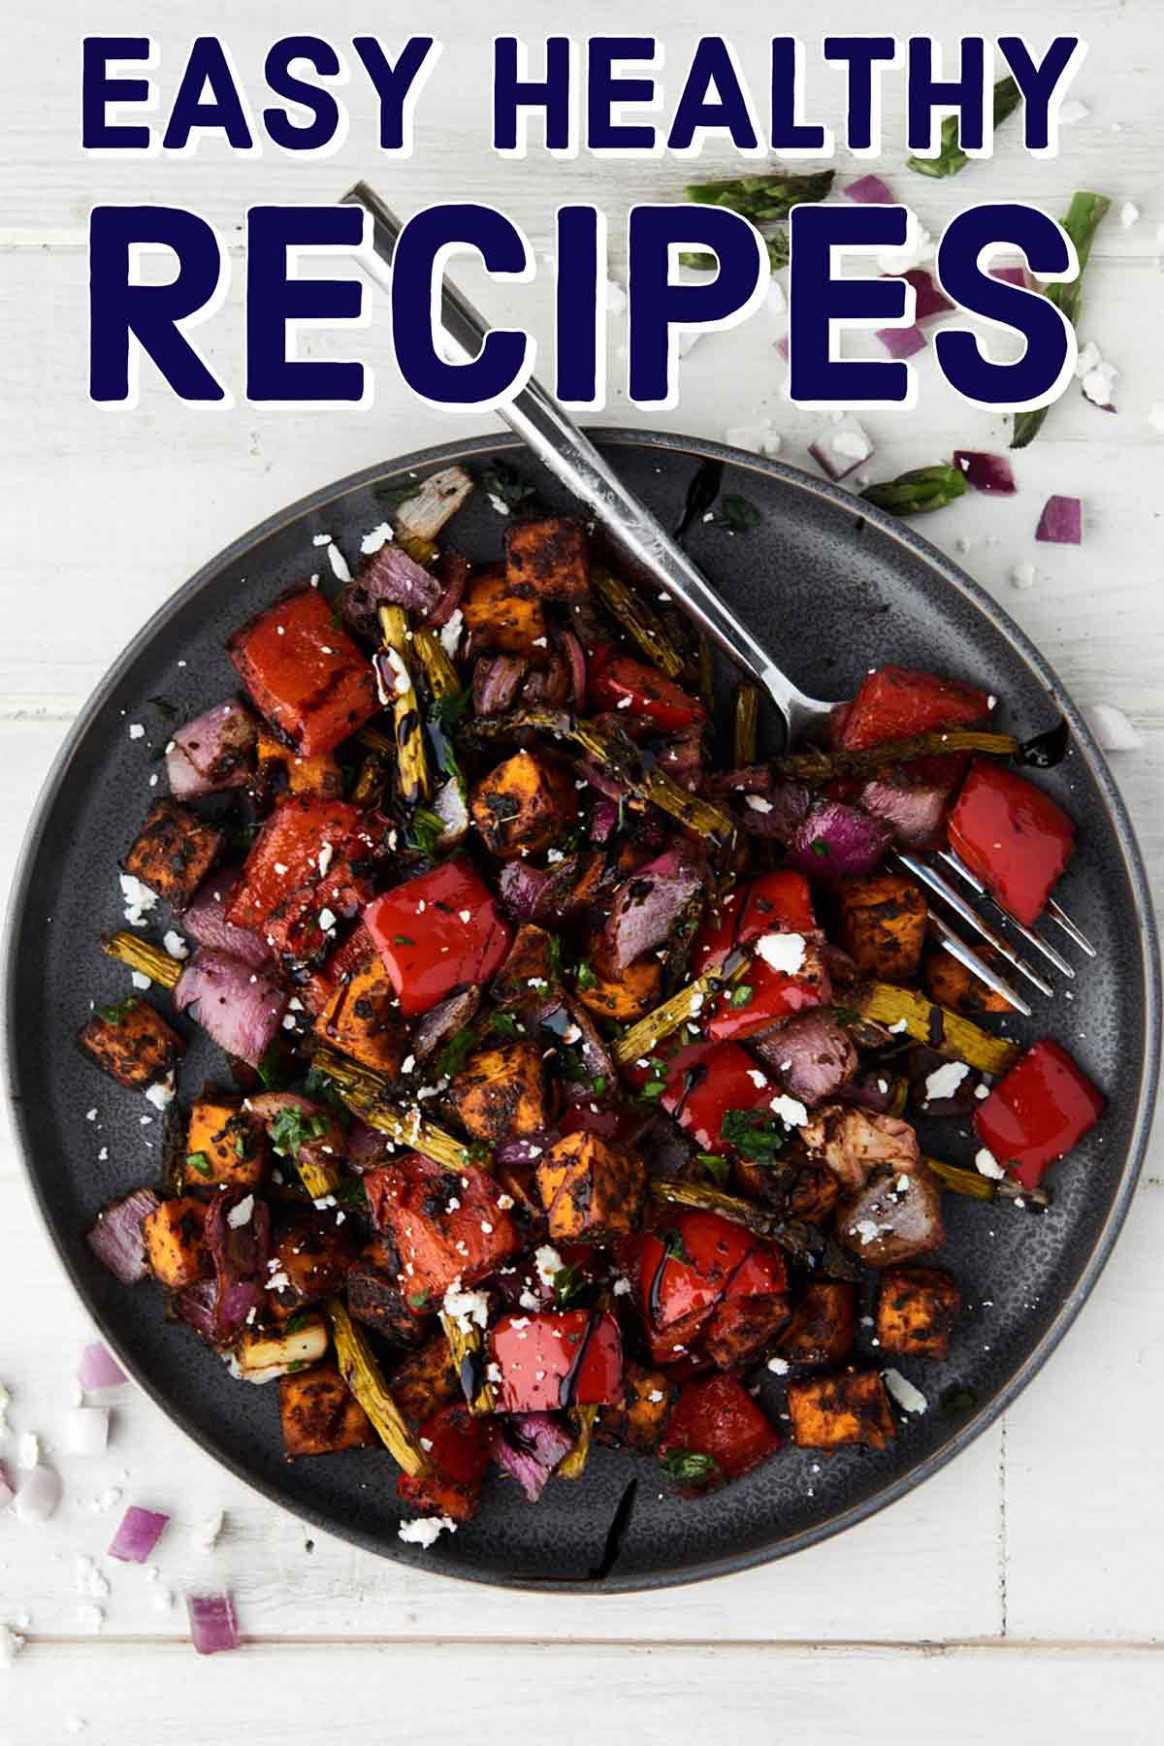 Easy Healthy Recipes 9 - Show Me the Yummy